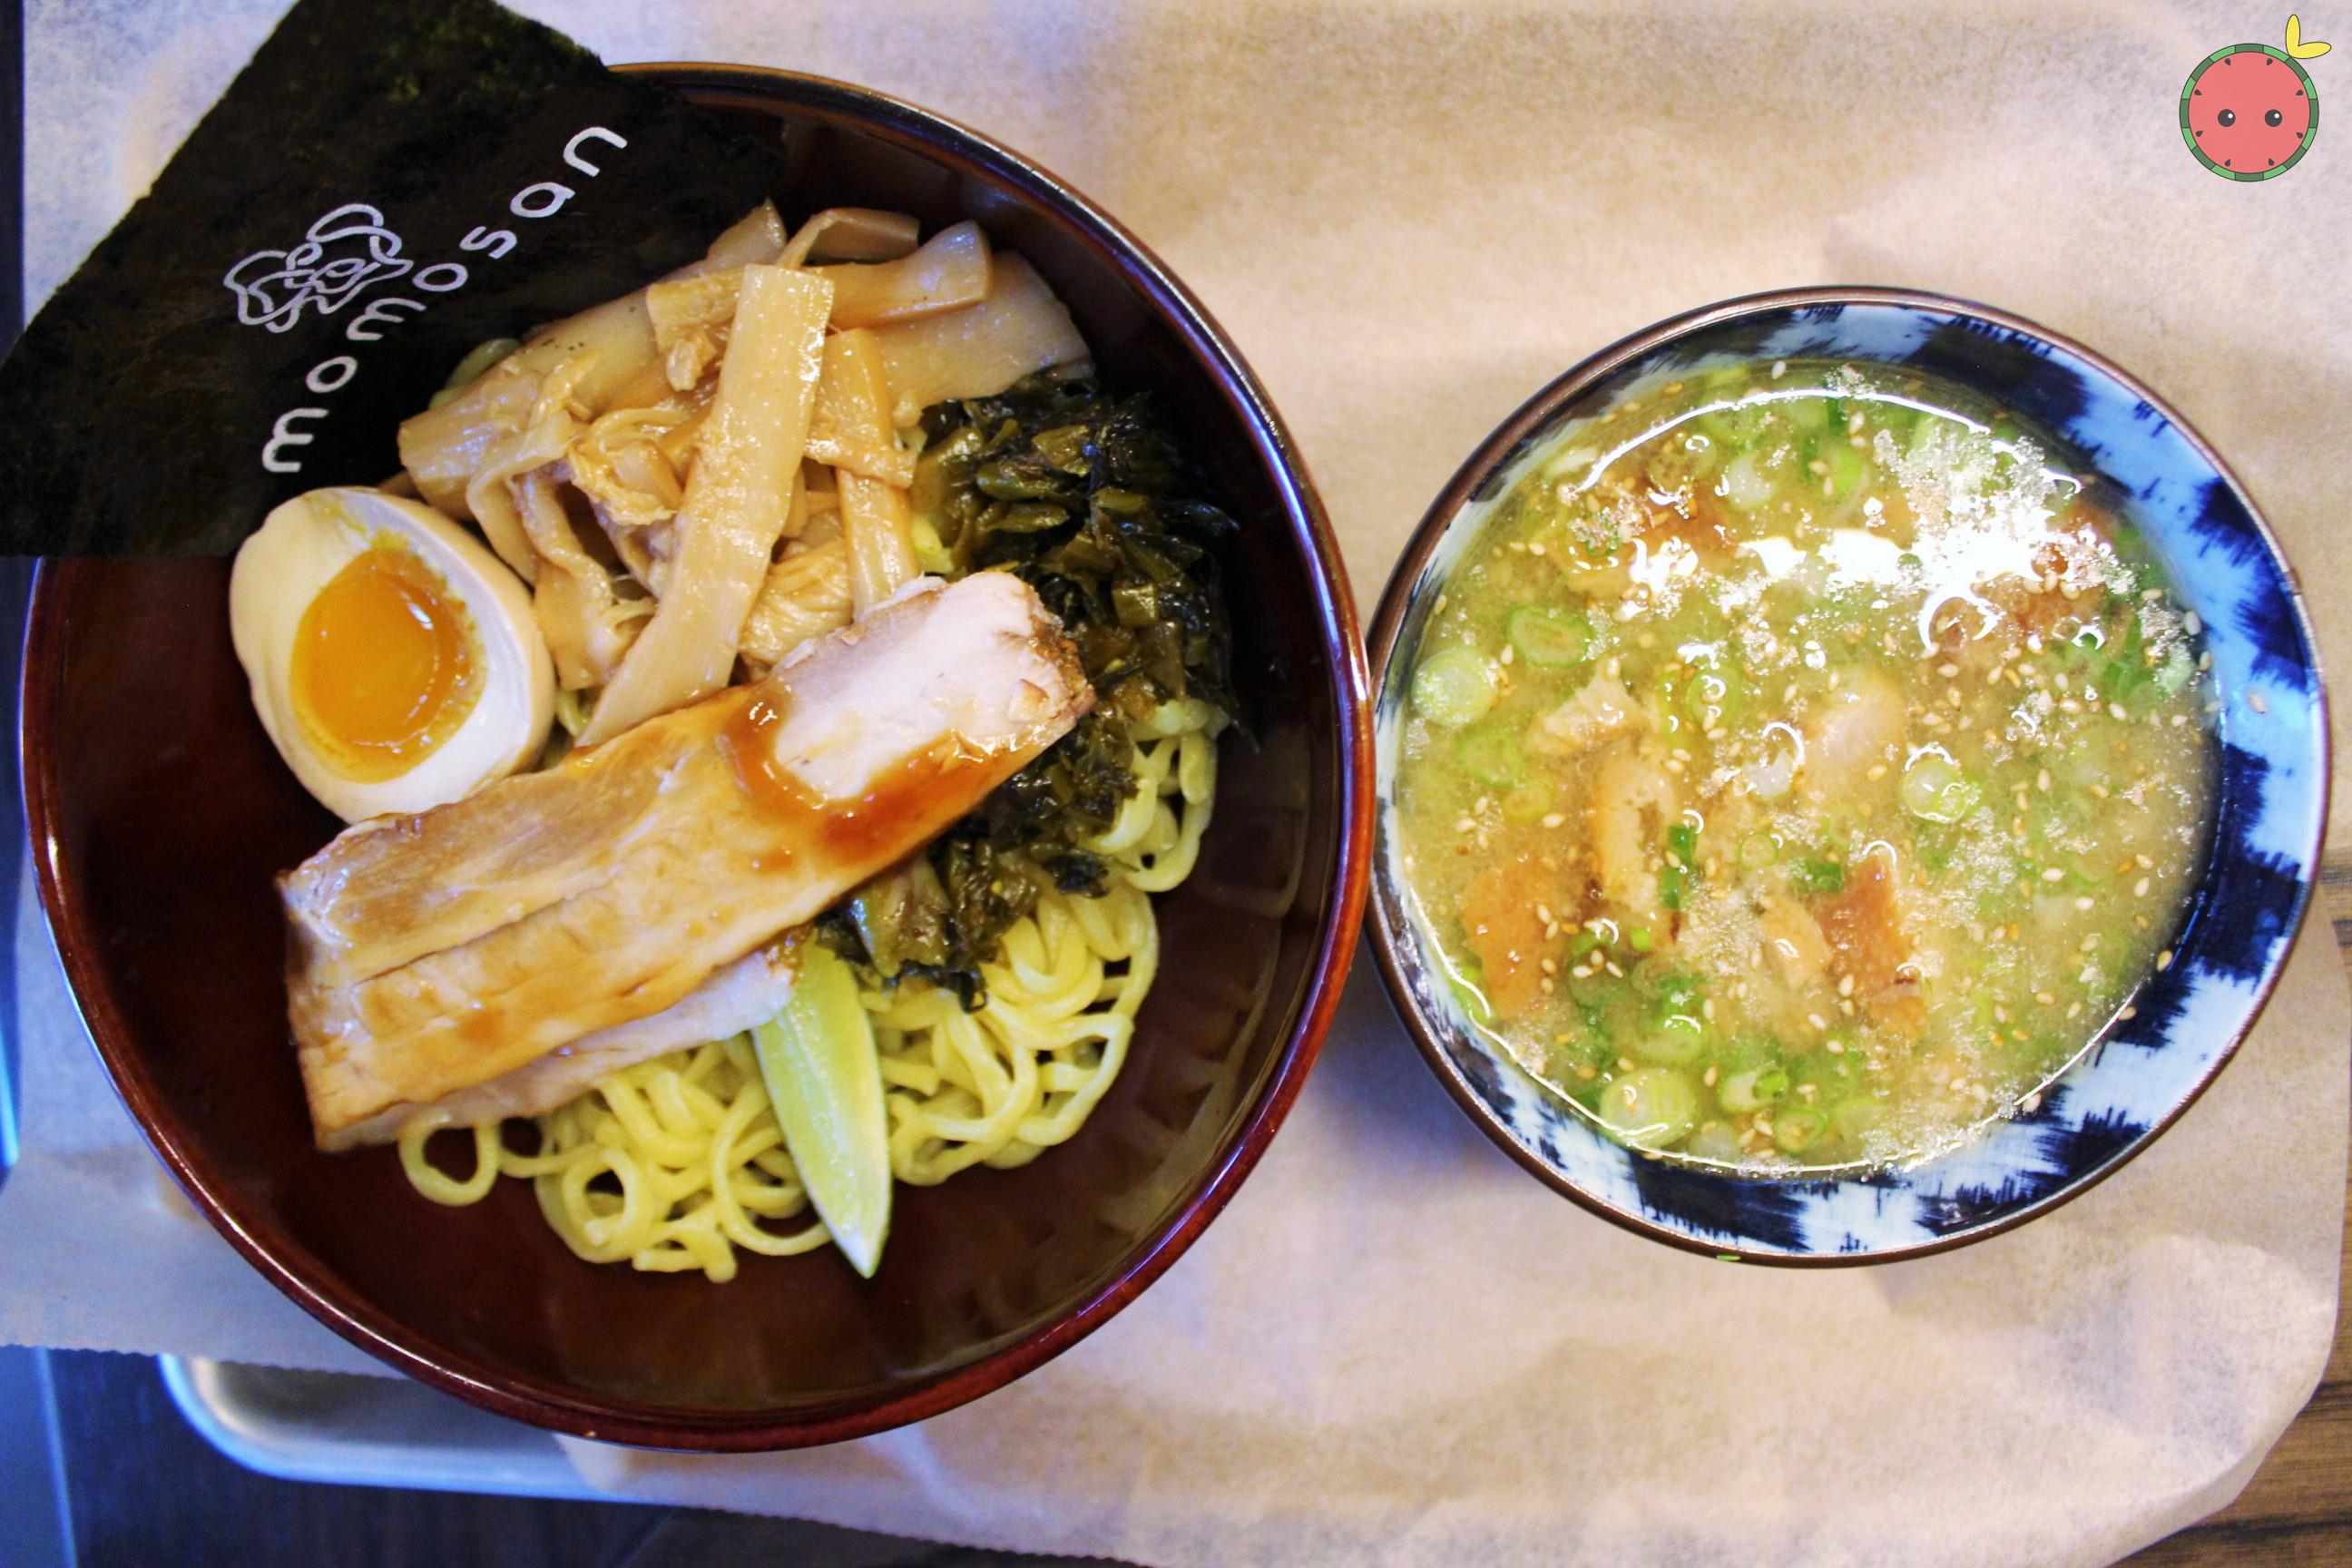 Tsukemen Ramen - Pork cashu, aji-tama, menma, takana, toasted nori, garlic oil, soy tare, lime in to